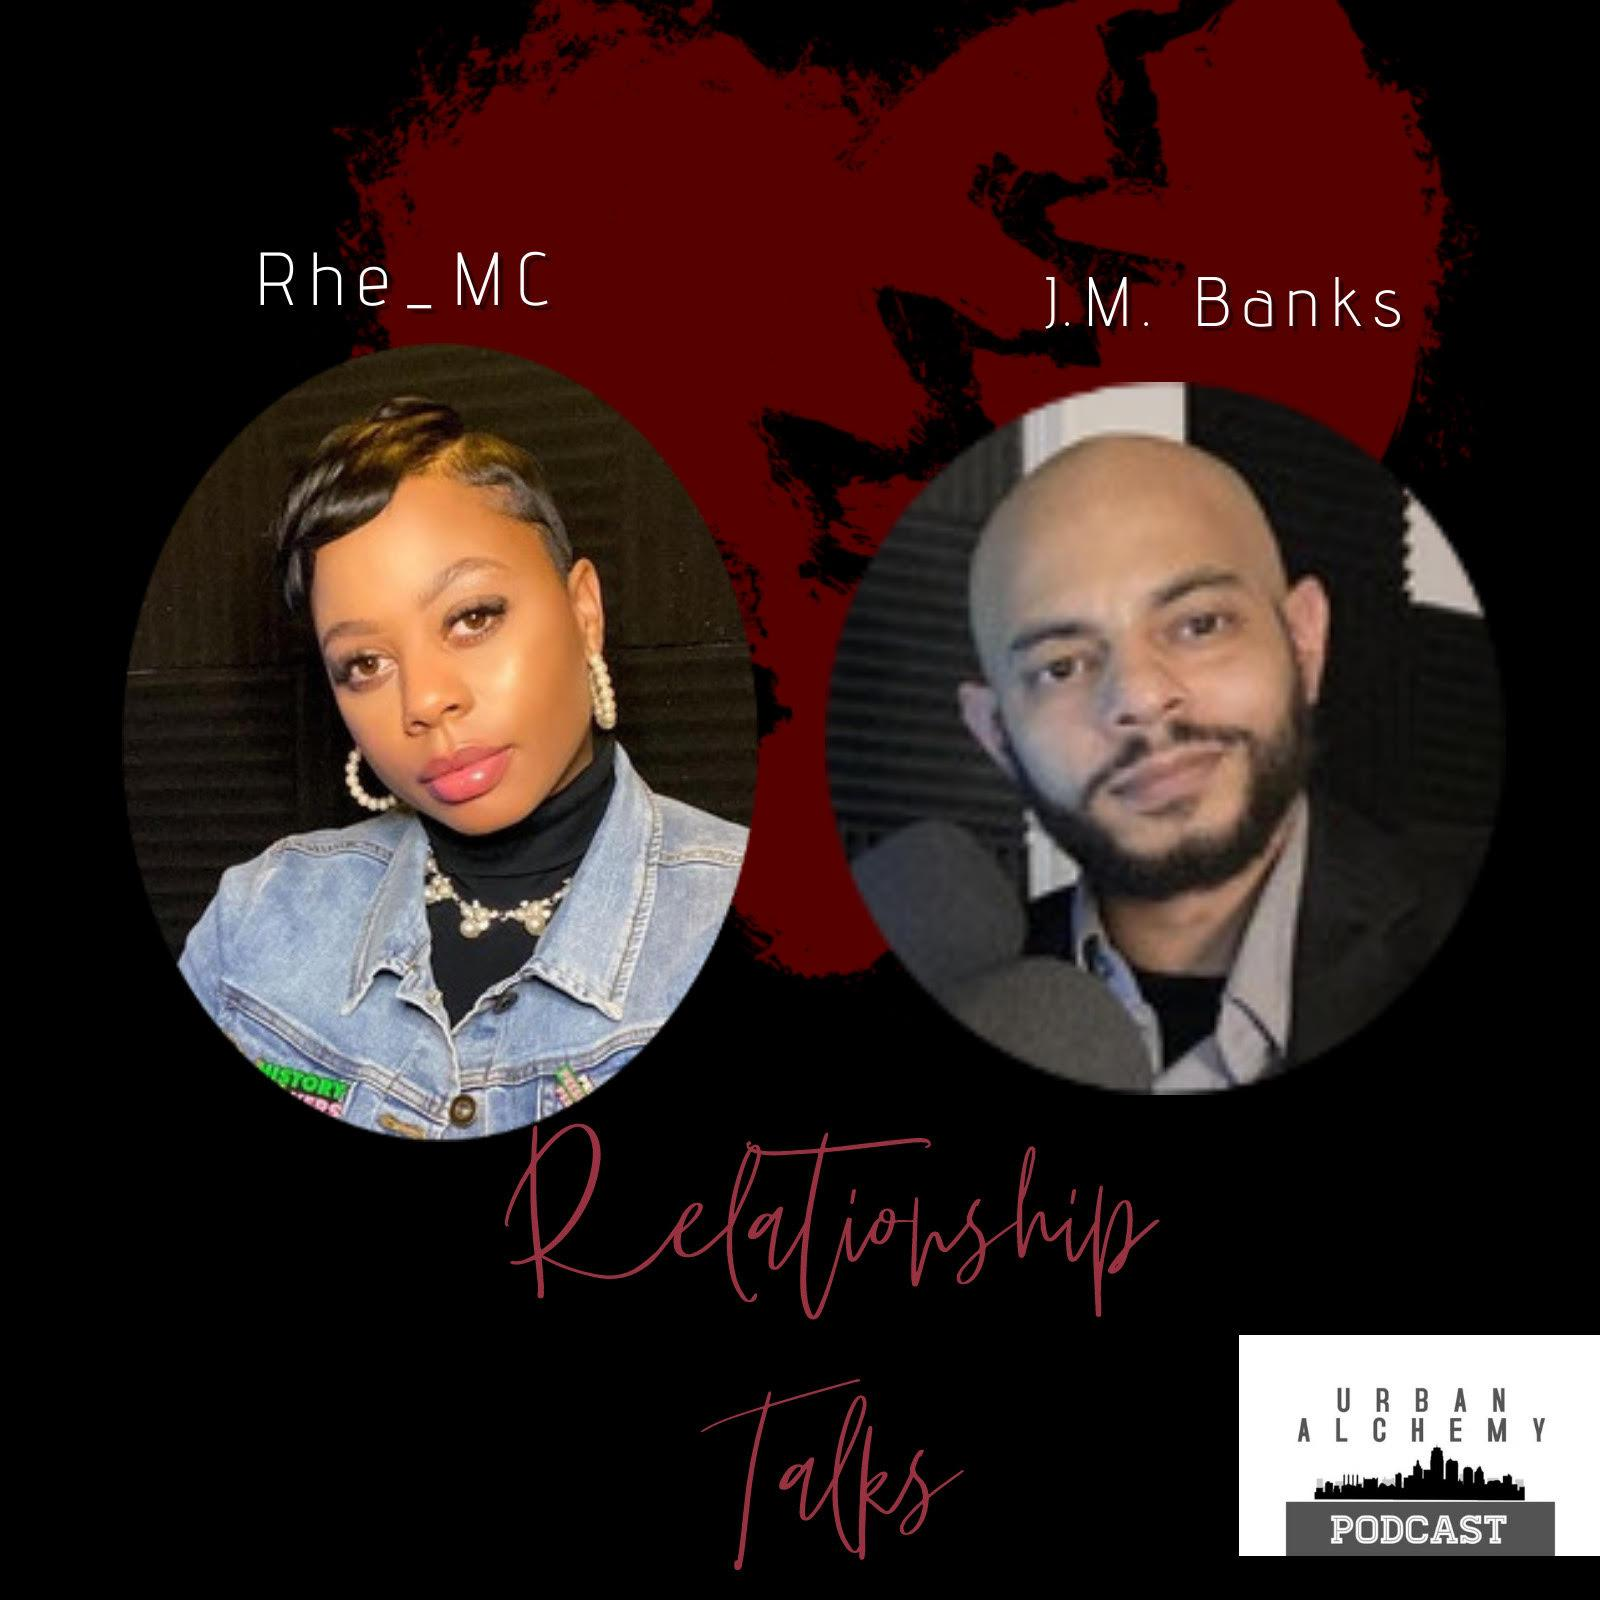 Relationship Talks - The 6th Tape